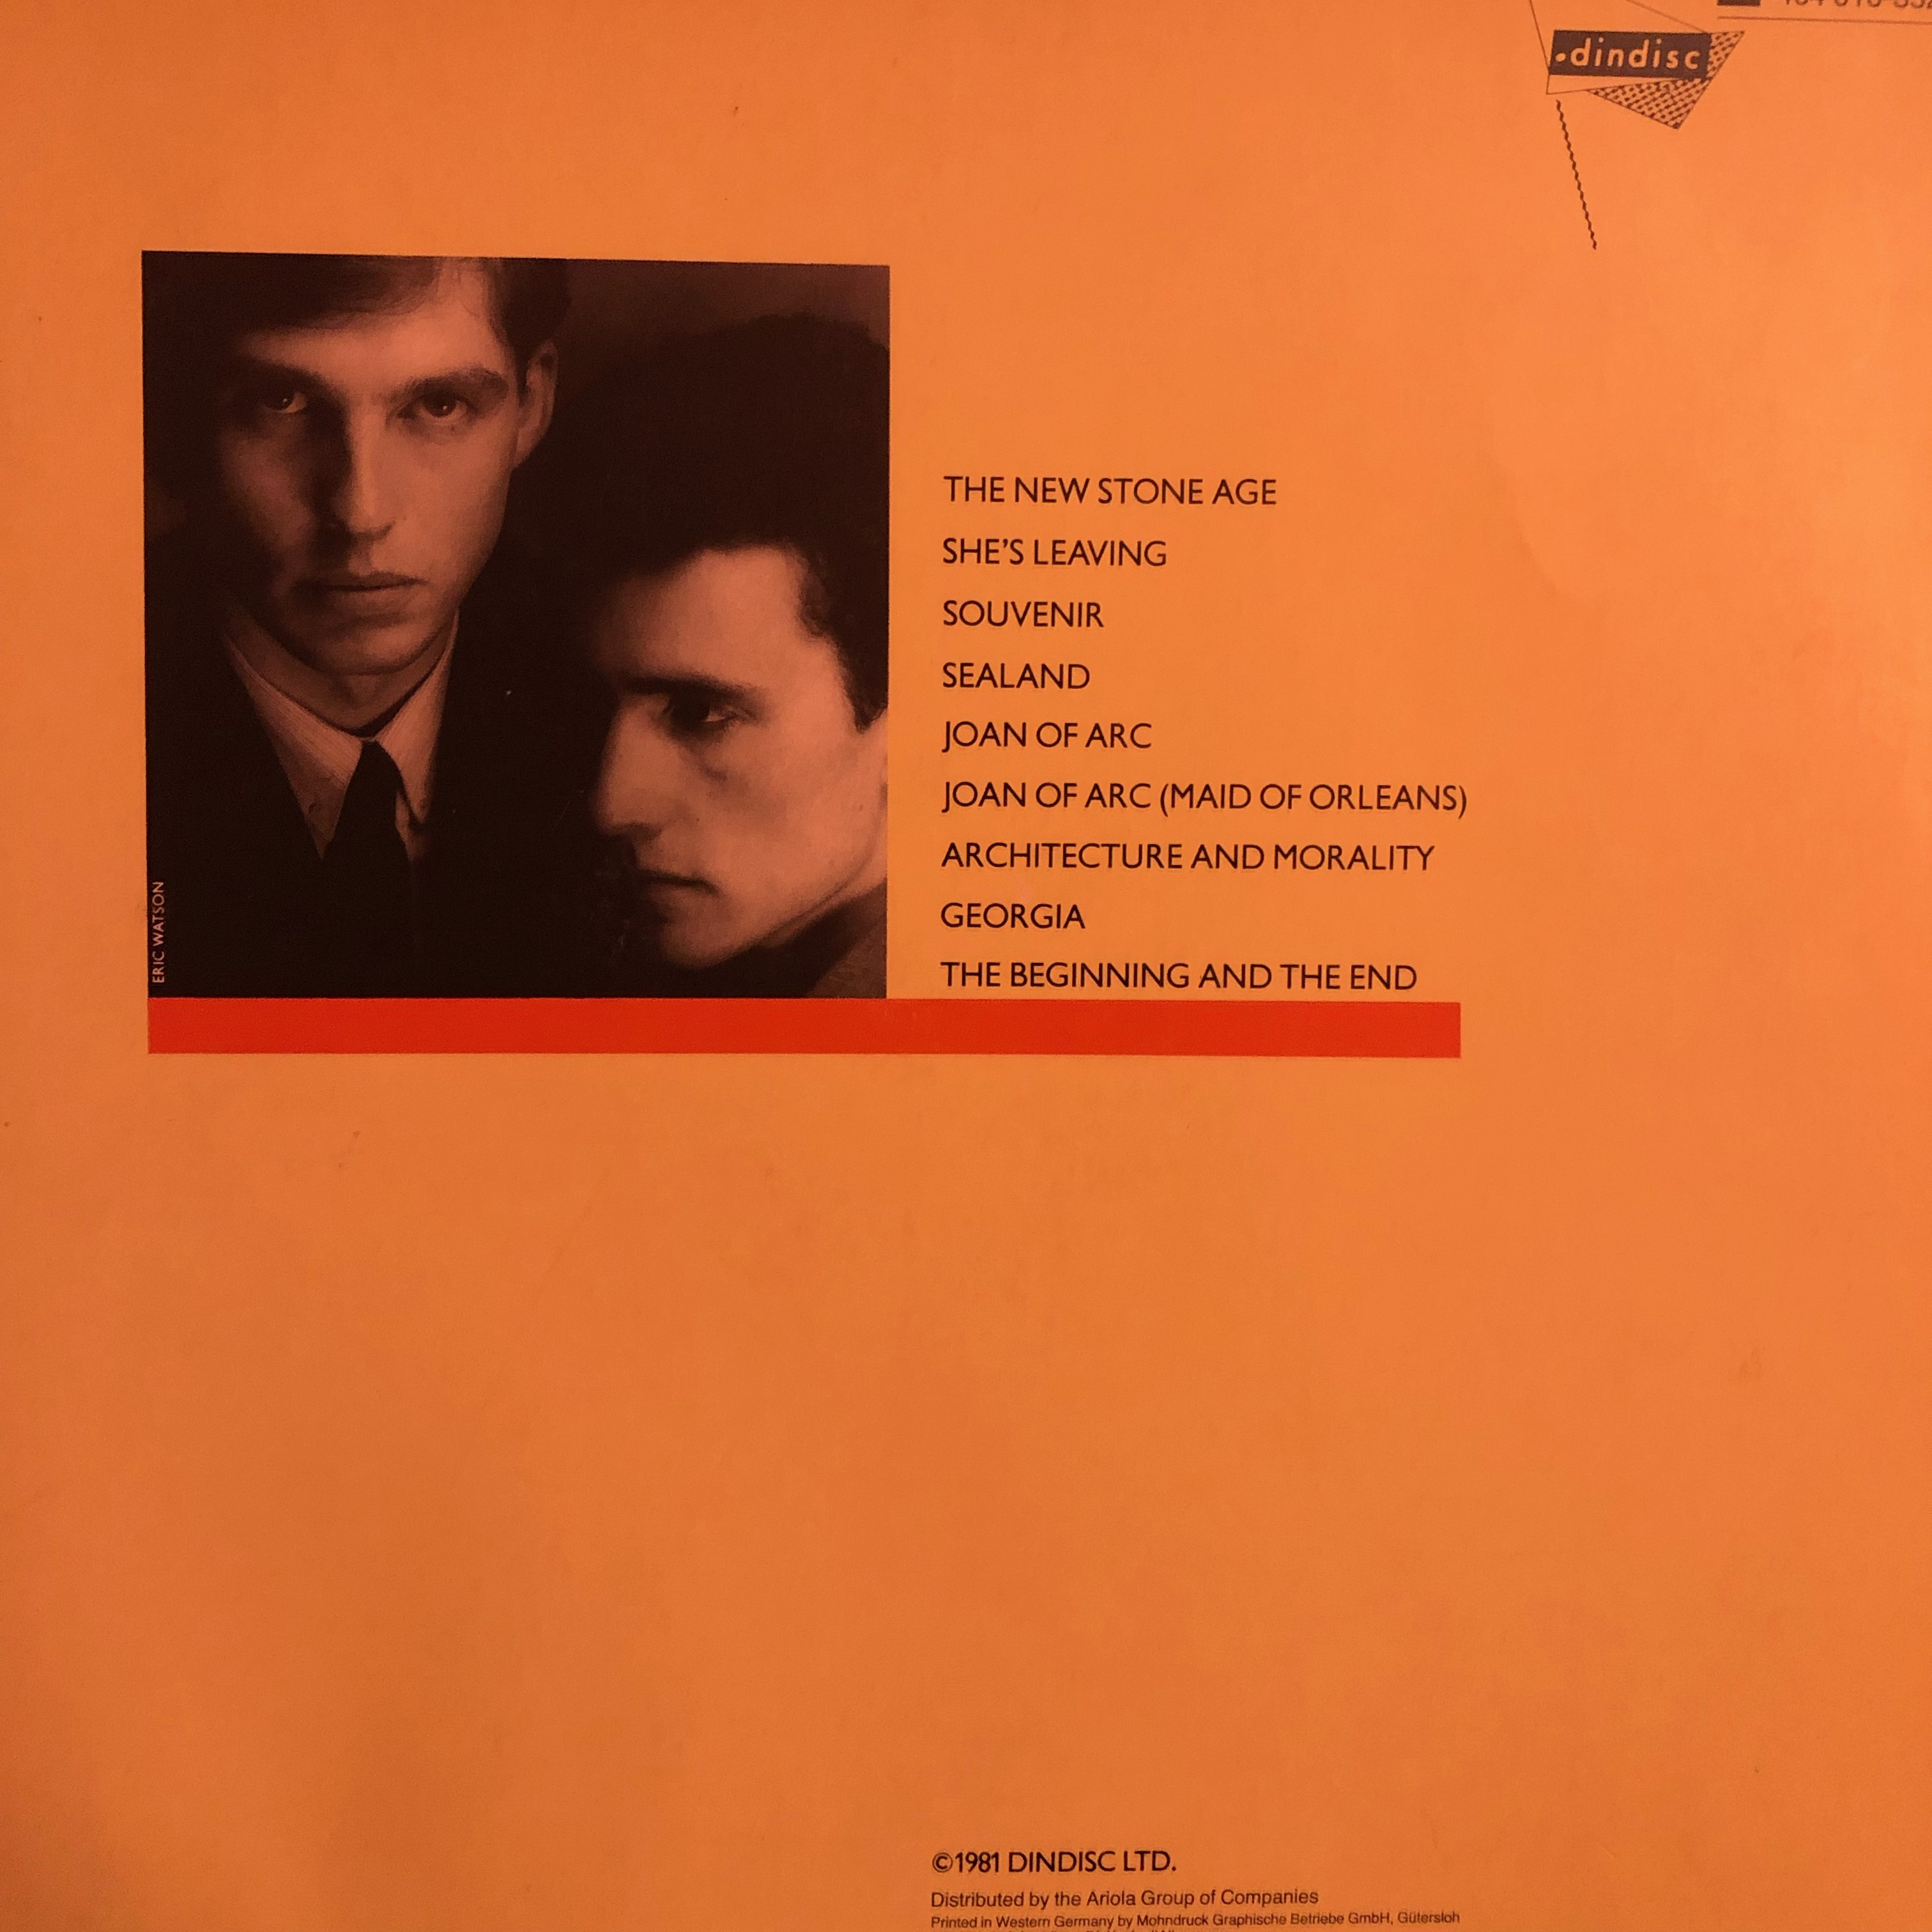 OMD - Architecture and Morality - Back Cover